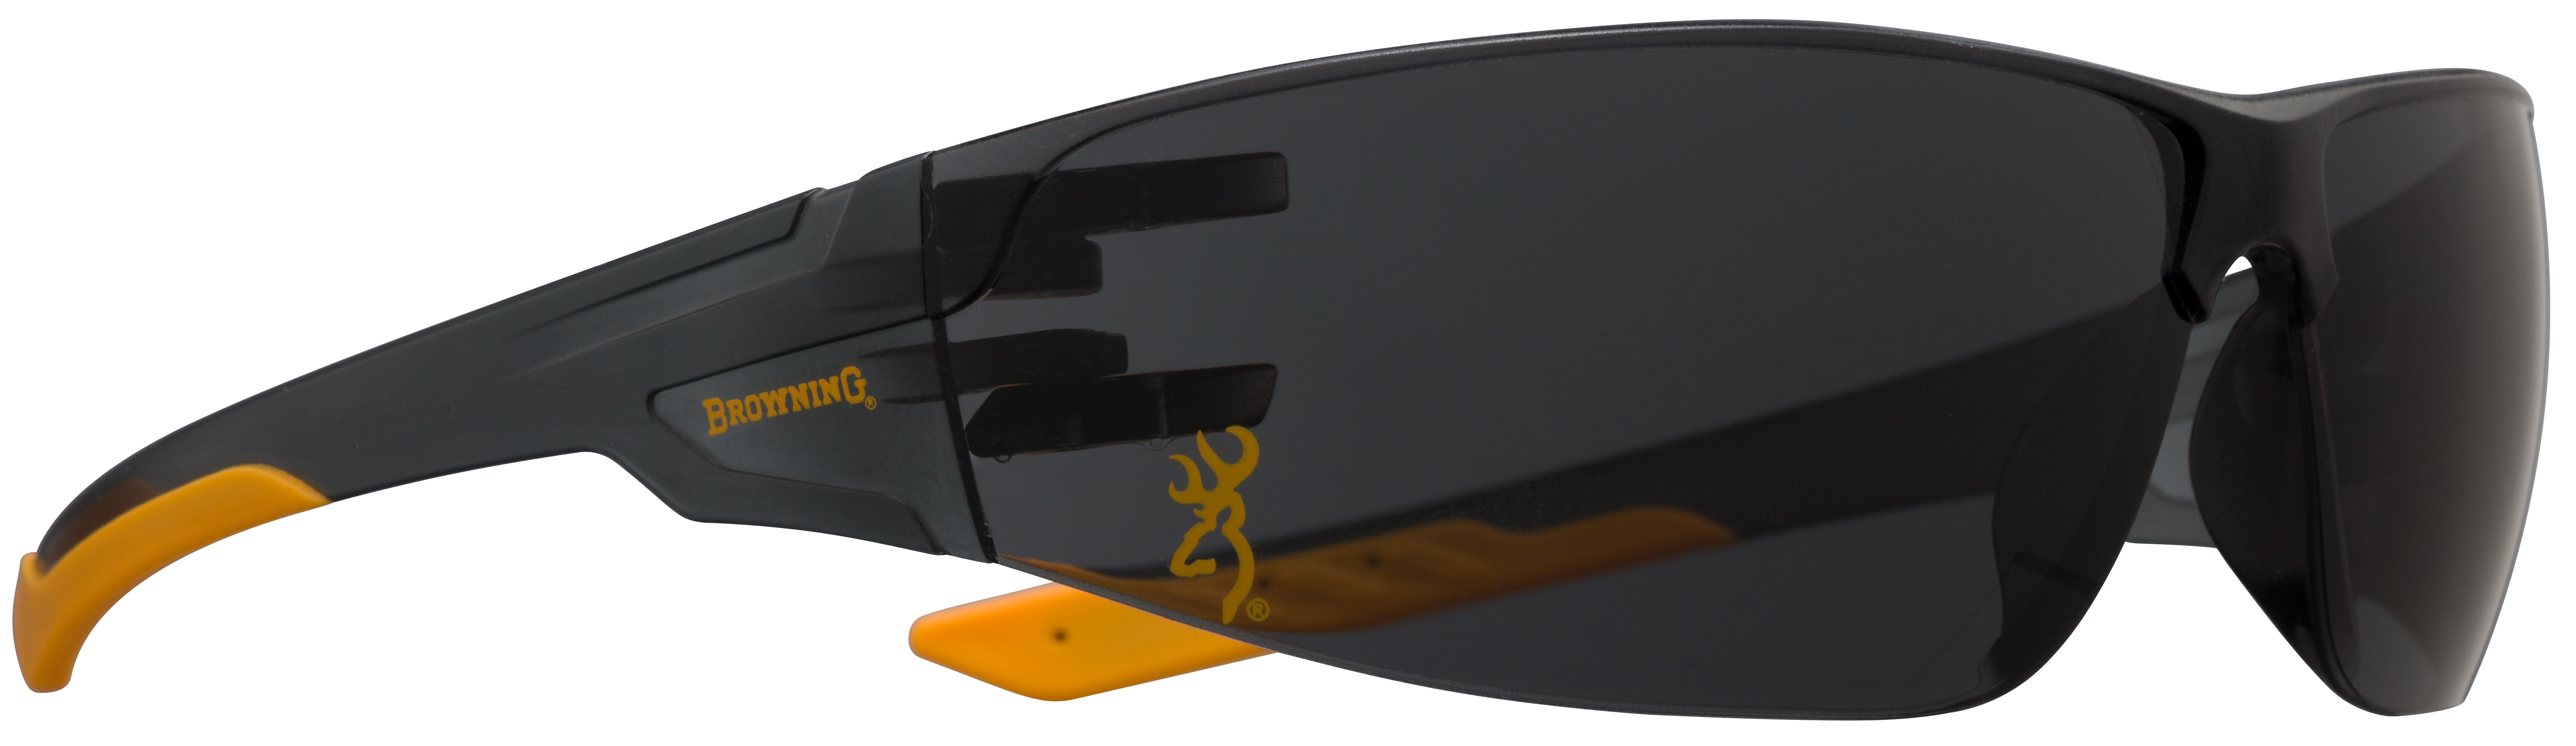 Browning Shooters Flex Shooting Glasses - Smoke Lens - Black Frame